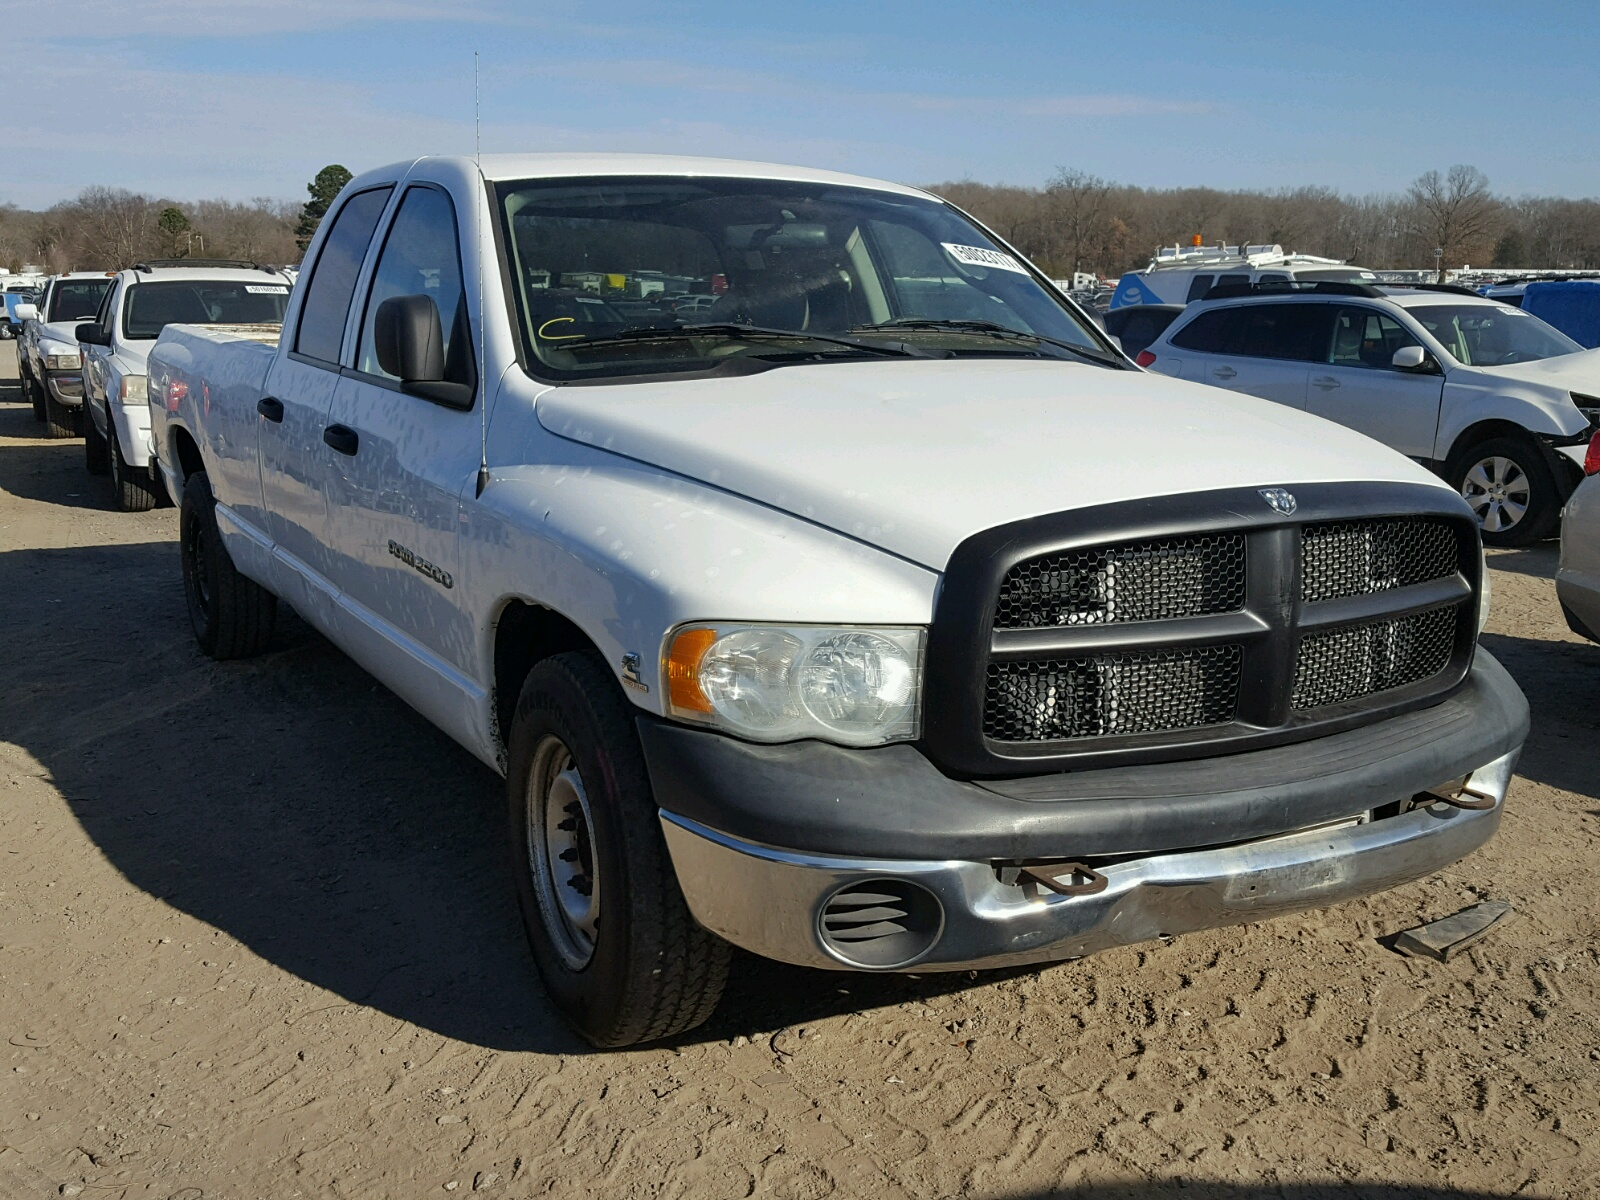 2003 dodge ram 2500 s for sale at copart conway ar lot 50023117. Black Bedroom Furniture Sets. Home Design Ideas